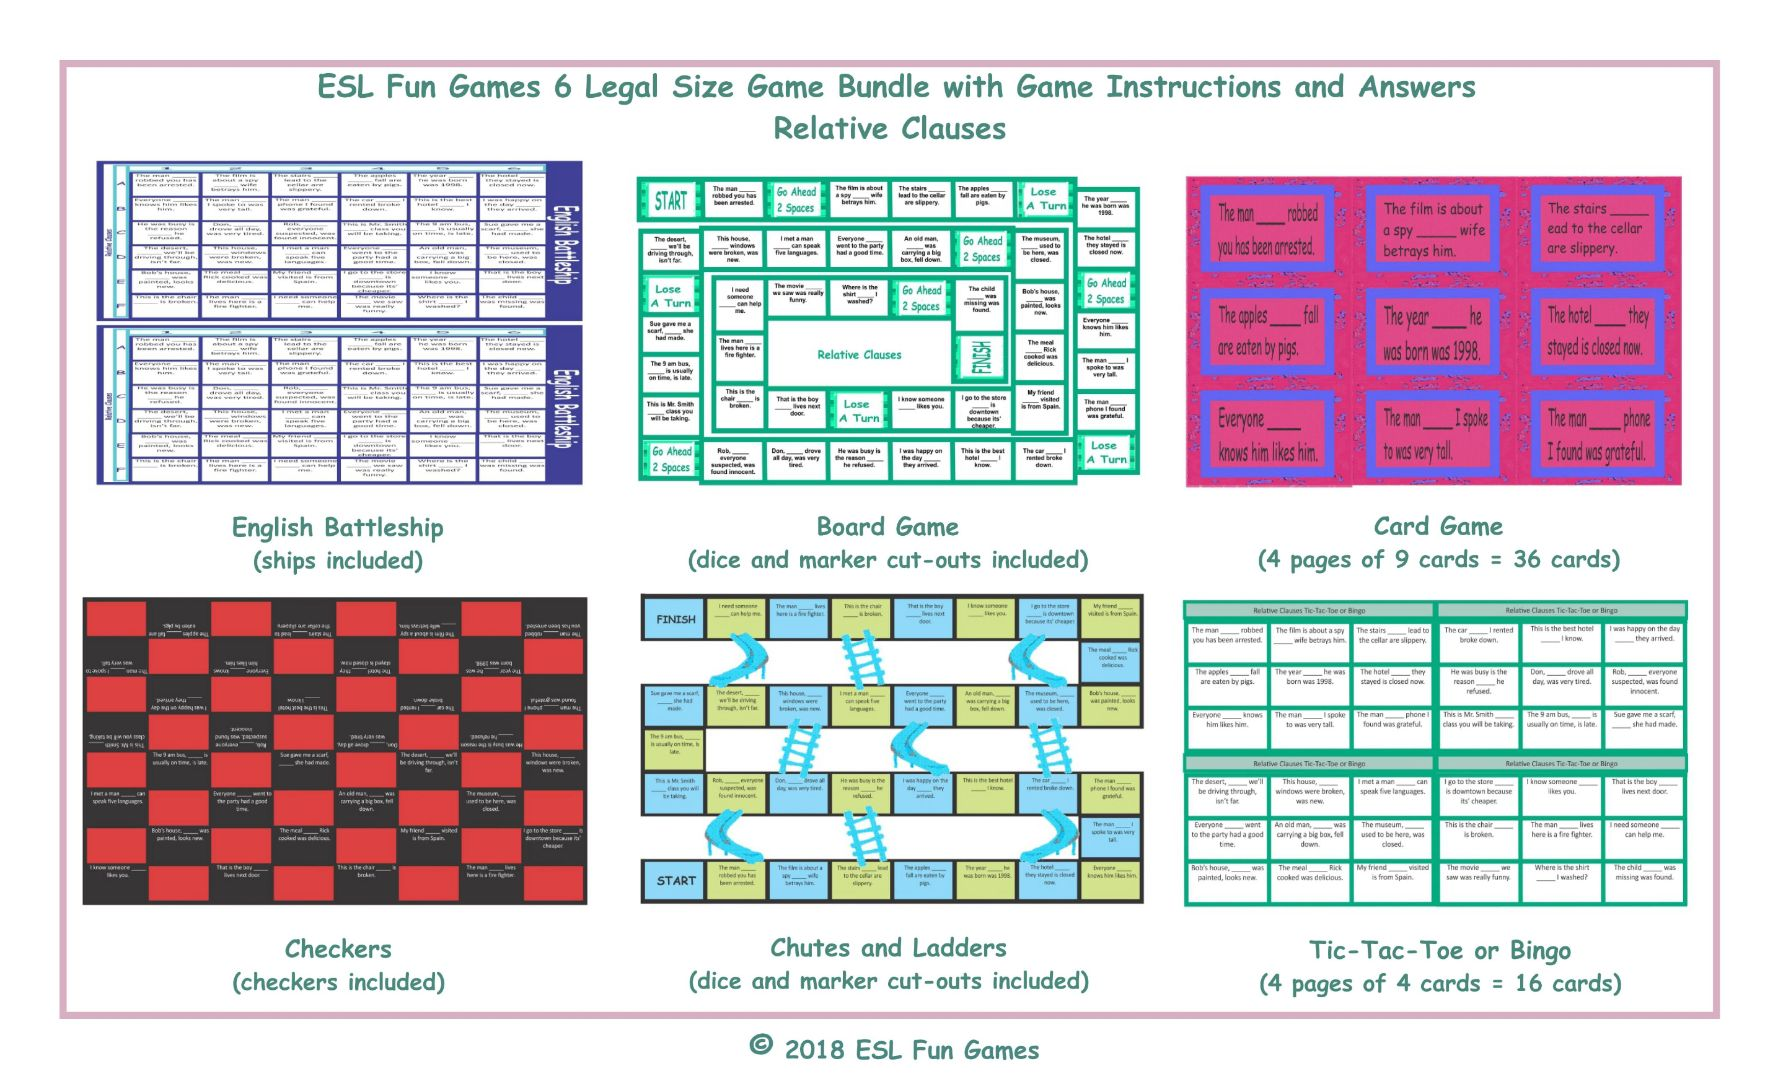 Relative Clauses 6 English Legal Text Game Bundle